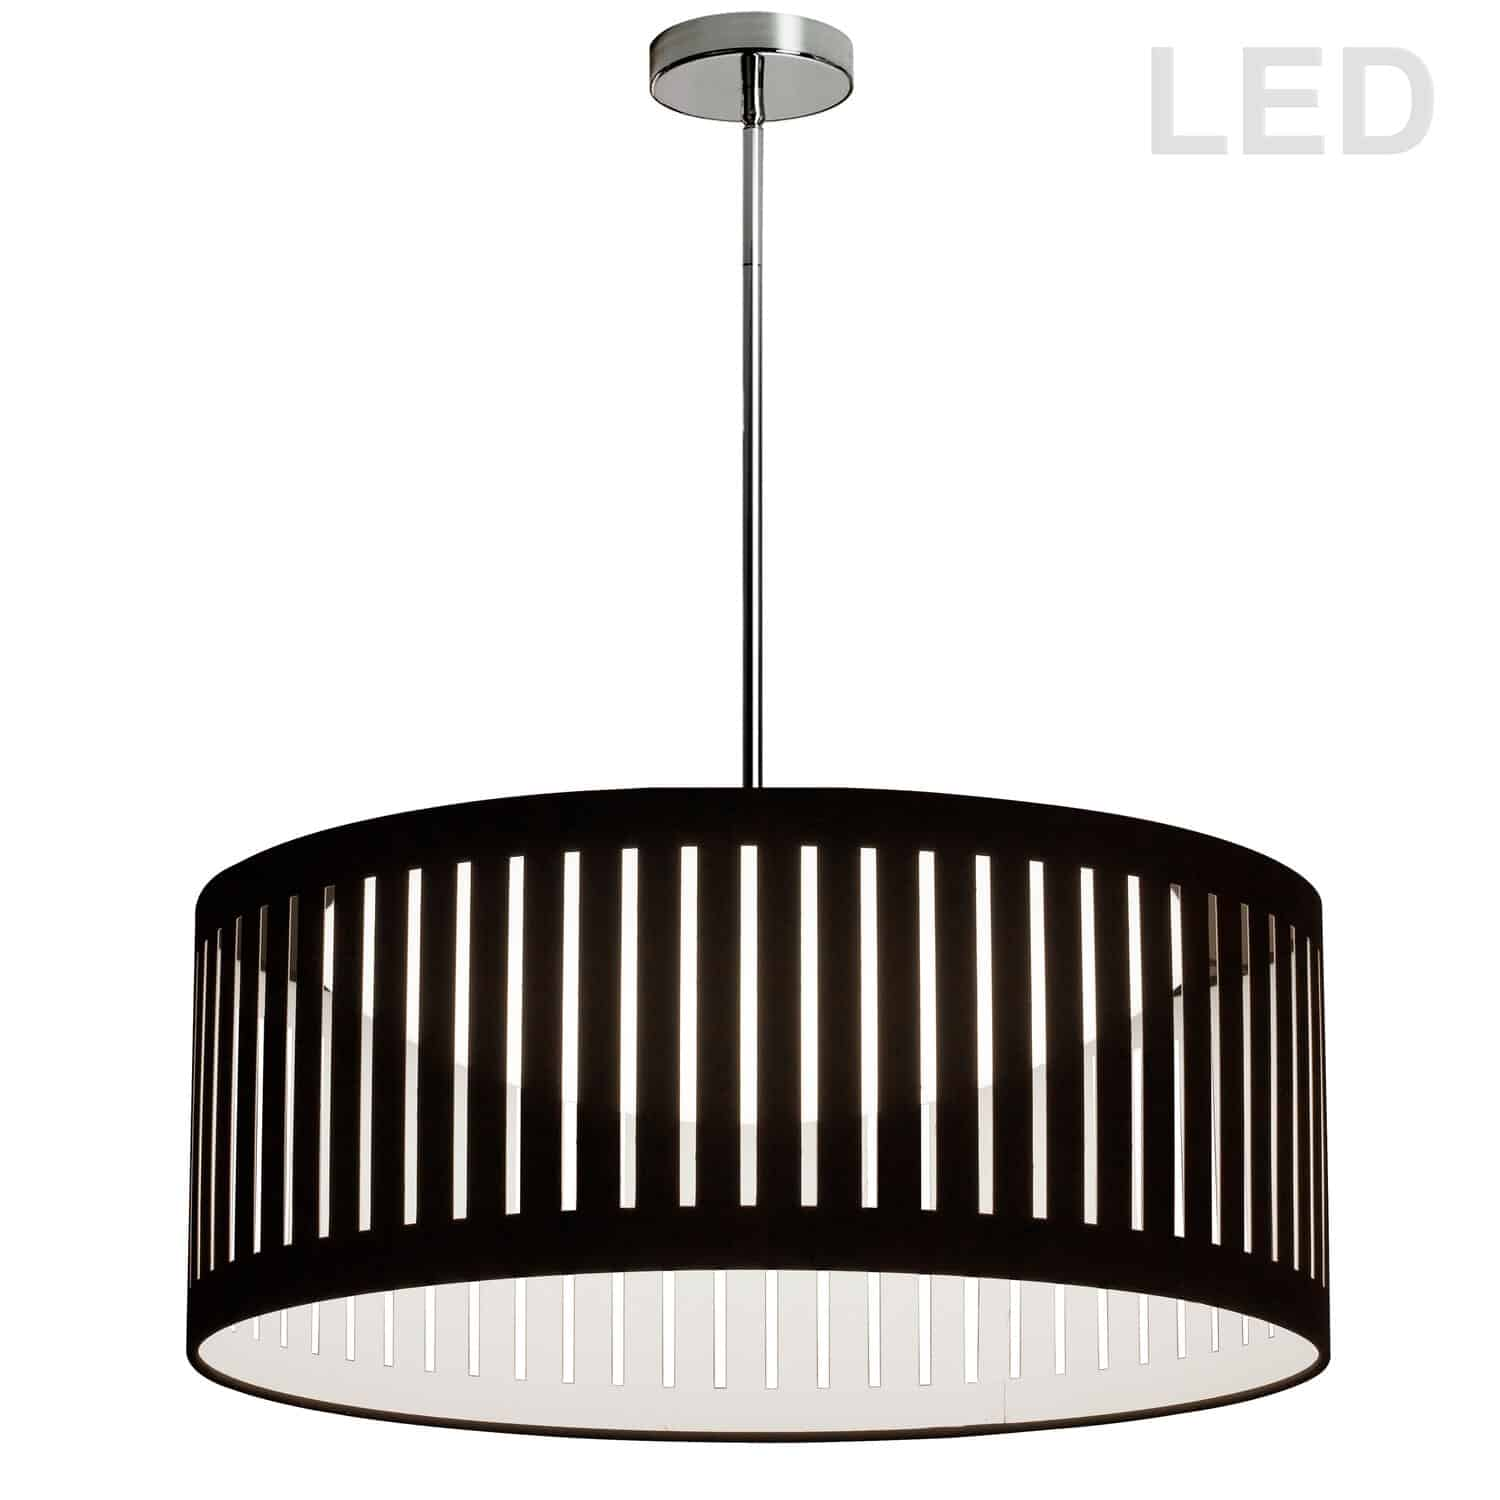 LED Slit Drum Shade, Black